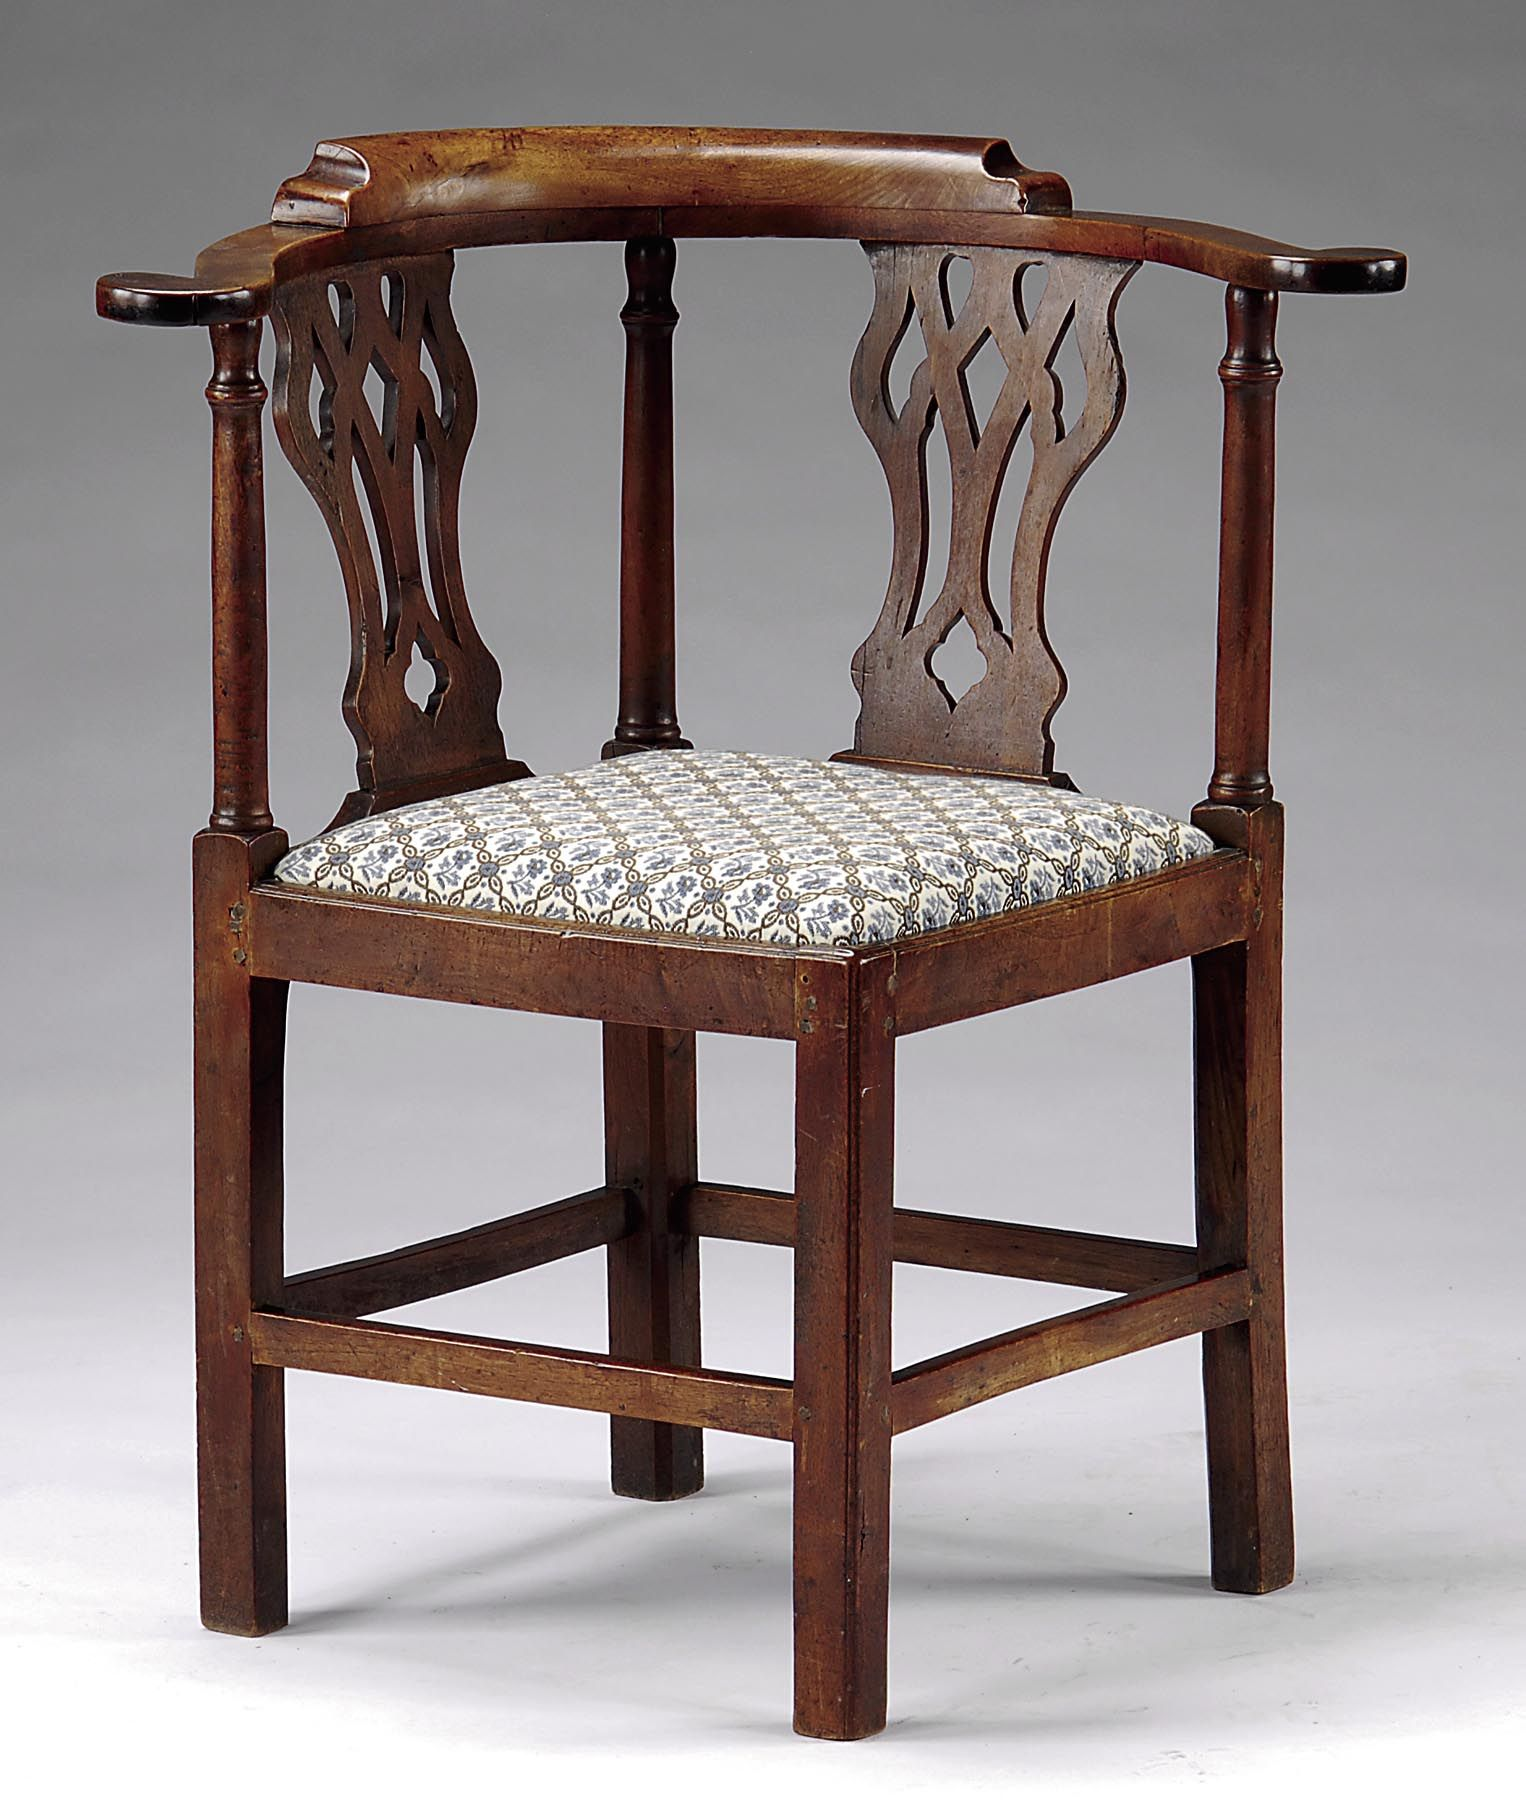 Superb 18th C American Walnut Chippendale Corner Chair Circa 1760-1785  Original Surface - For - Antique Corner Chairs Antique Furniture